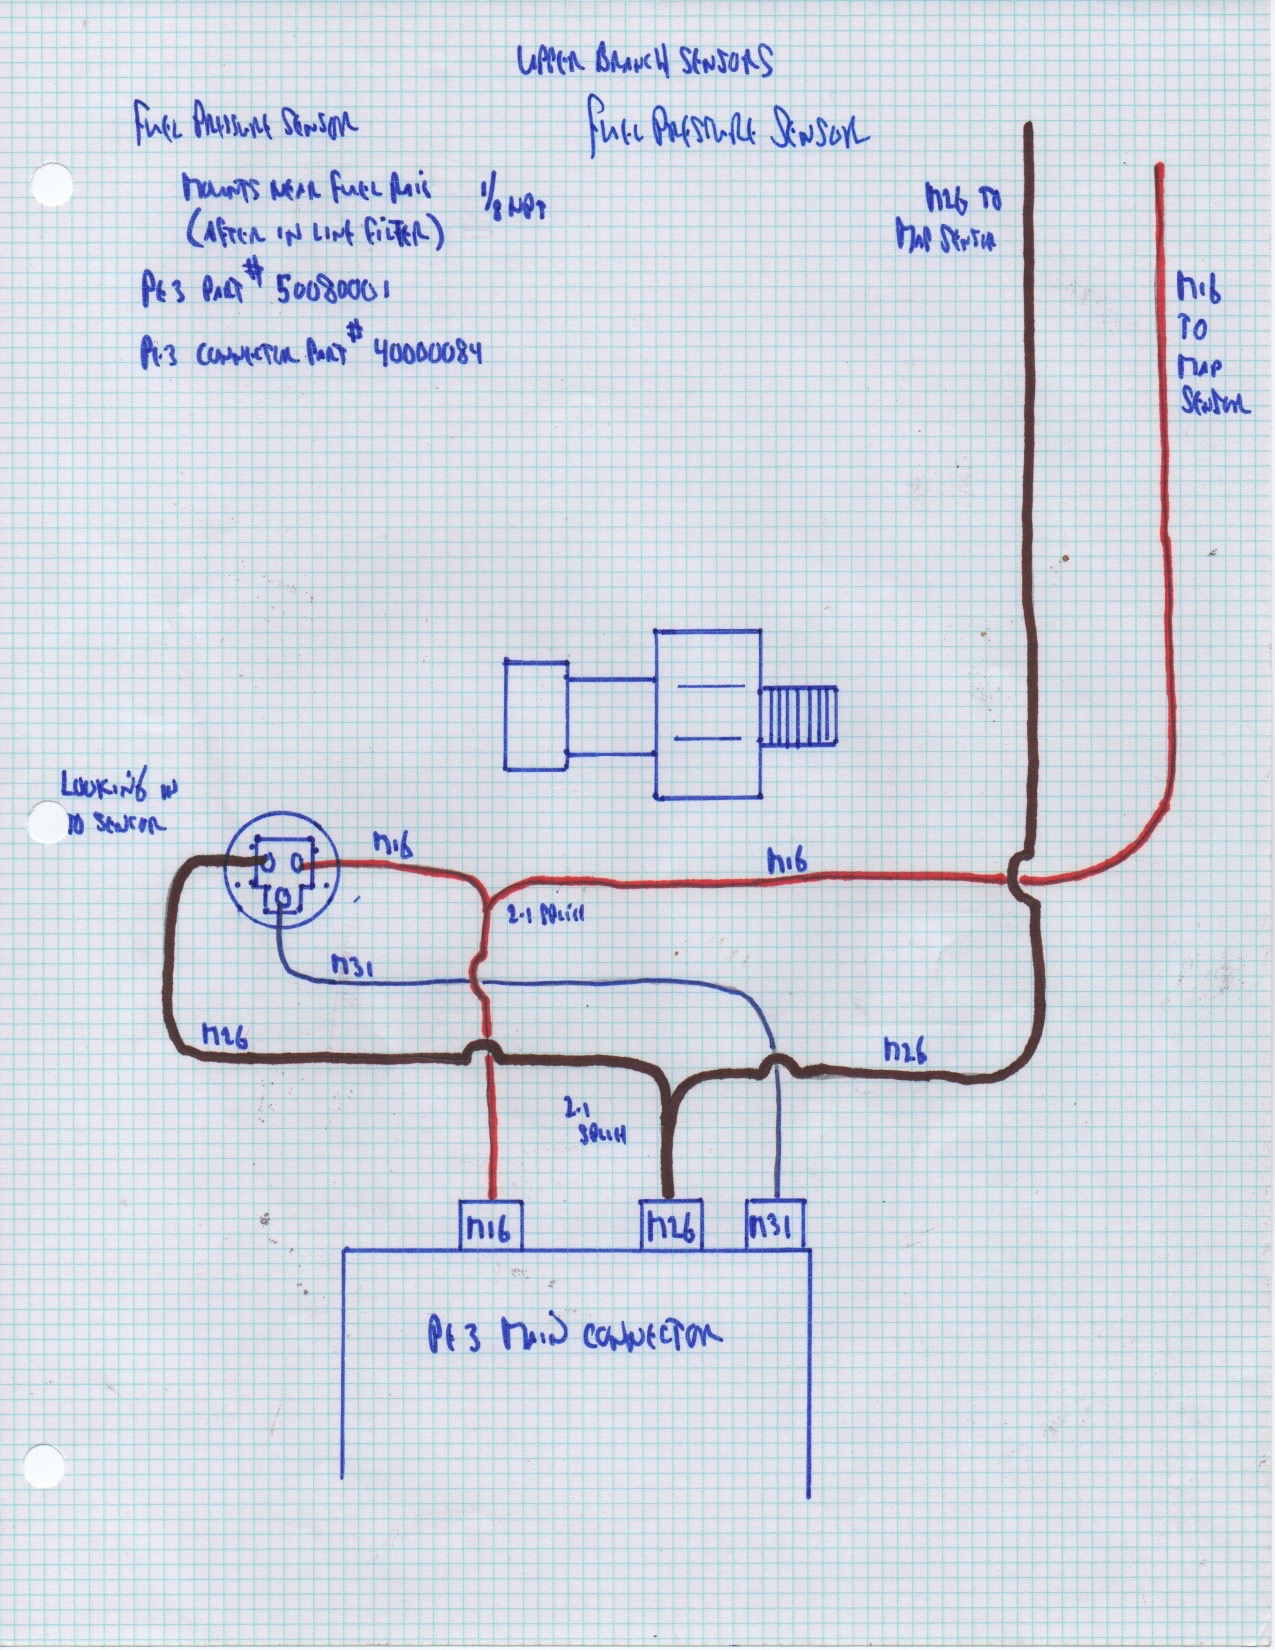 fuel pressure sensor placement and wiring \u2013 junk yard zetec Fuel Tank Wiring Diagram fuel pressure sensor wiring diagram left pin is the m26 ground middle (and lower) pin is for m31 signal power once again comes in from m16